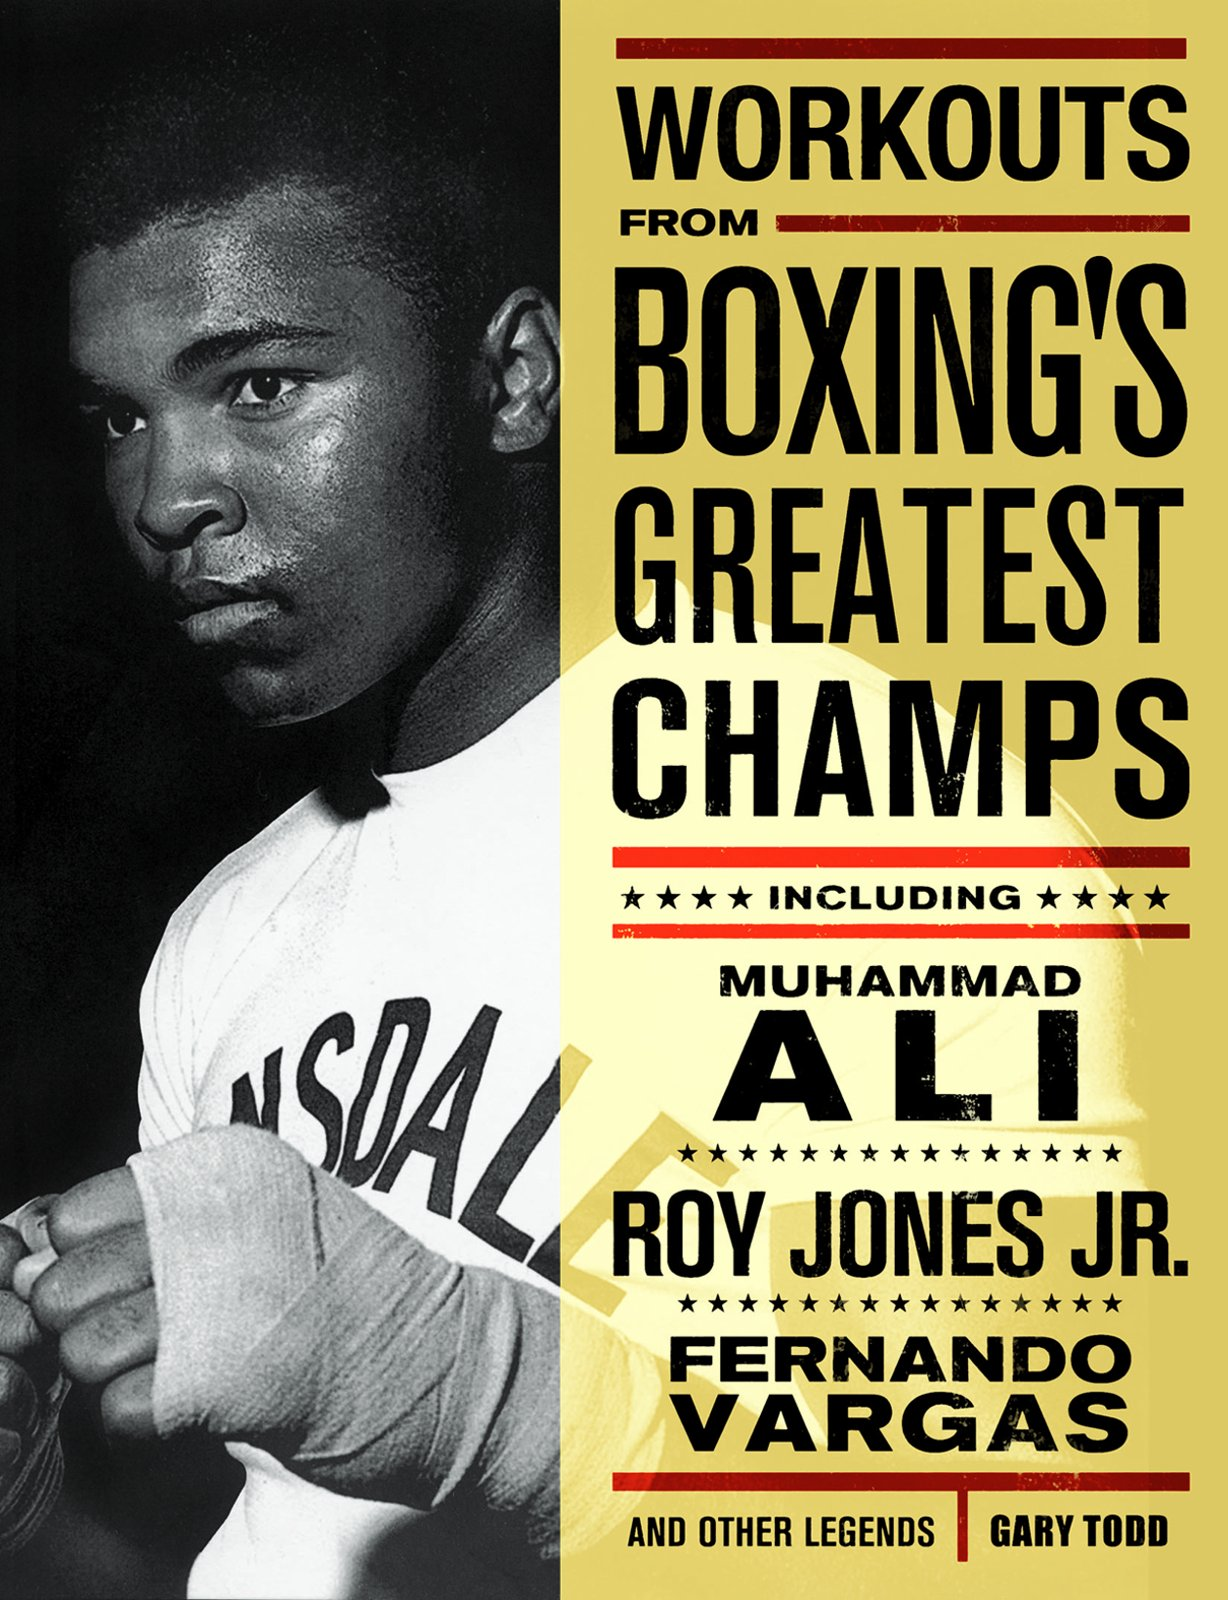 workouts-from-boxing-s-greatest-champs-get-in-shape-with-muhammad-ali-fernando-vargas-roy-jones-jr-and-other-legends